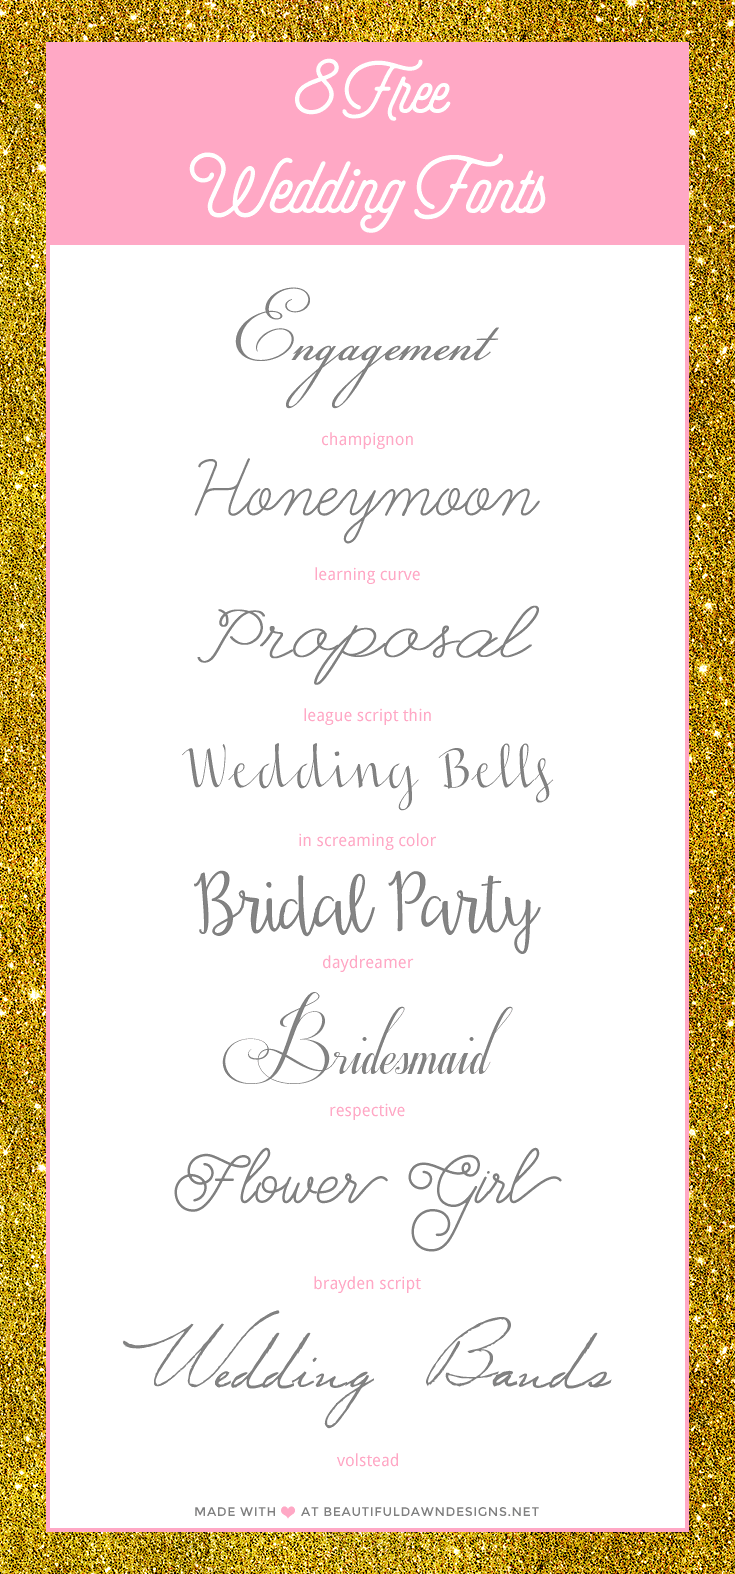 Free Wedding Fonts Beautiful Dawn Designs